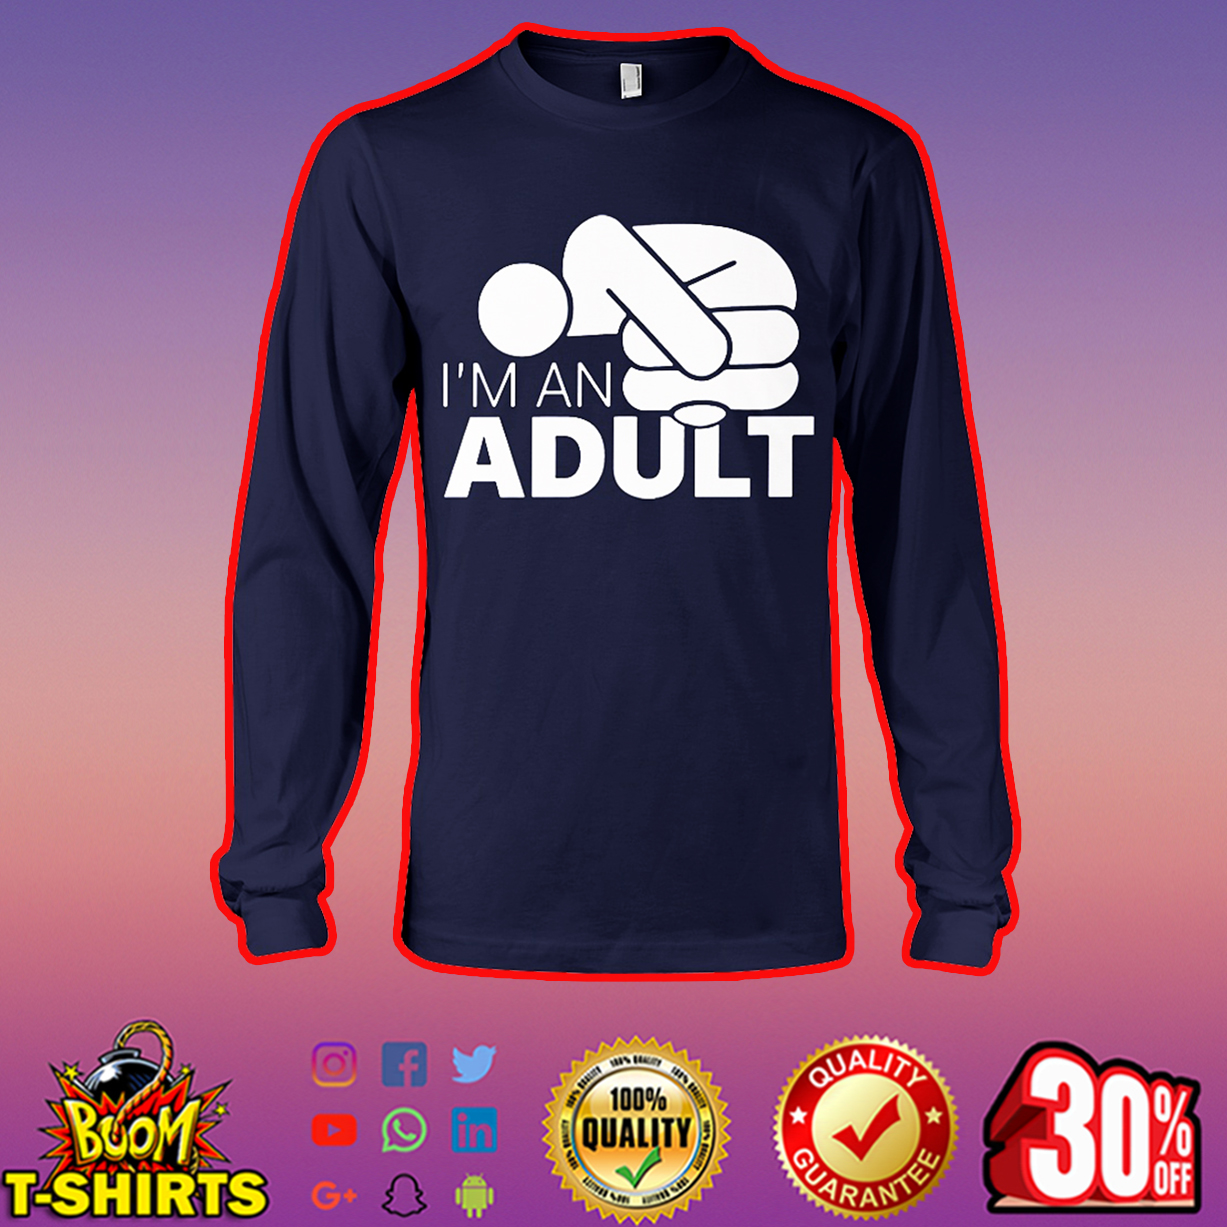 I'm an adult long sleeve tee